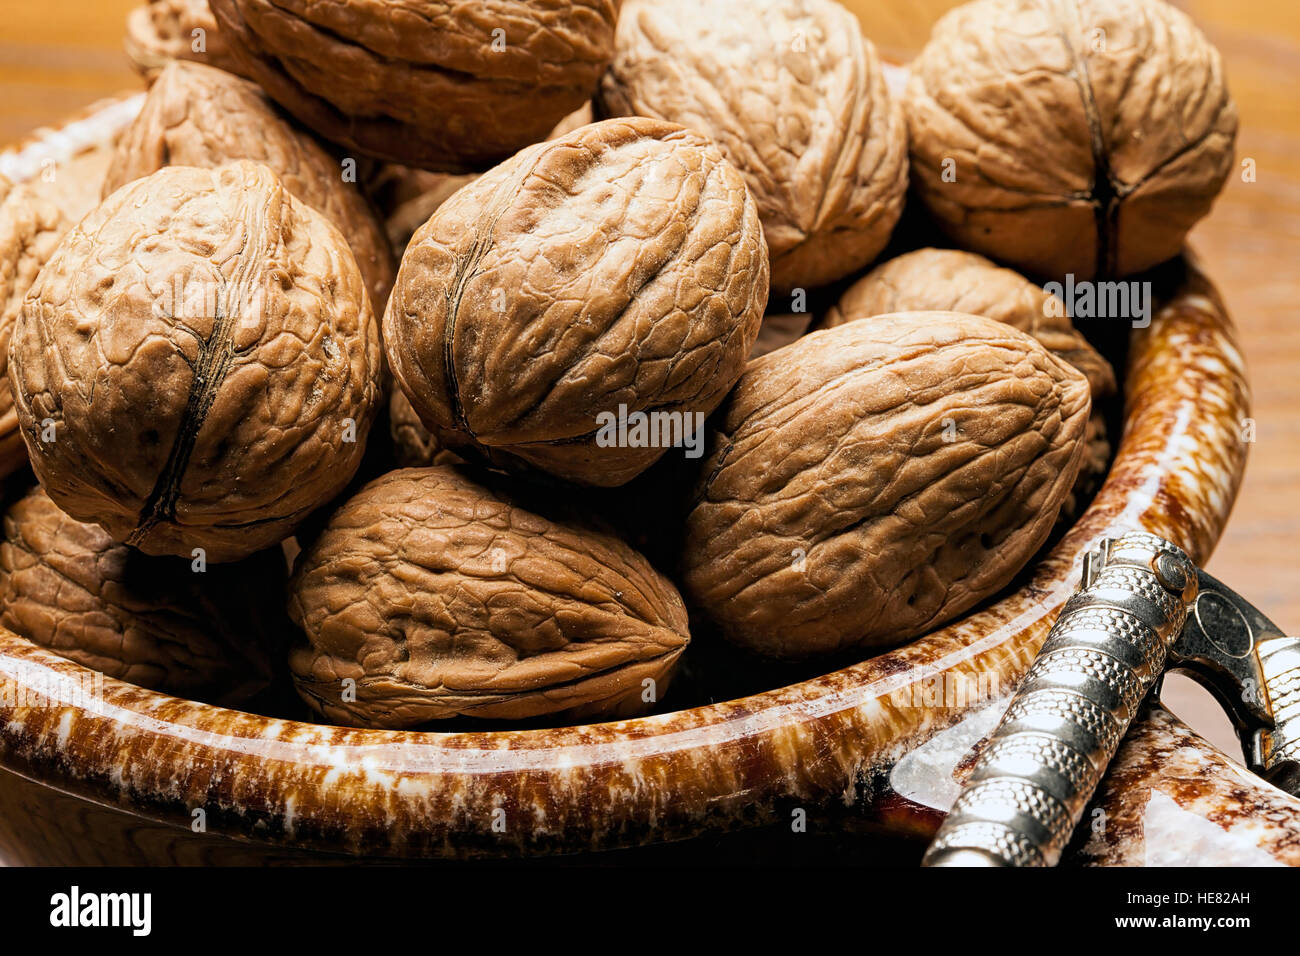 Close up of unshelled walnuts. Stock Photo